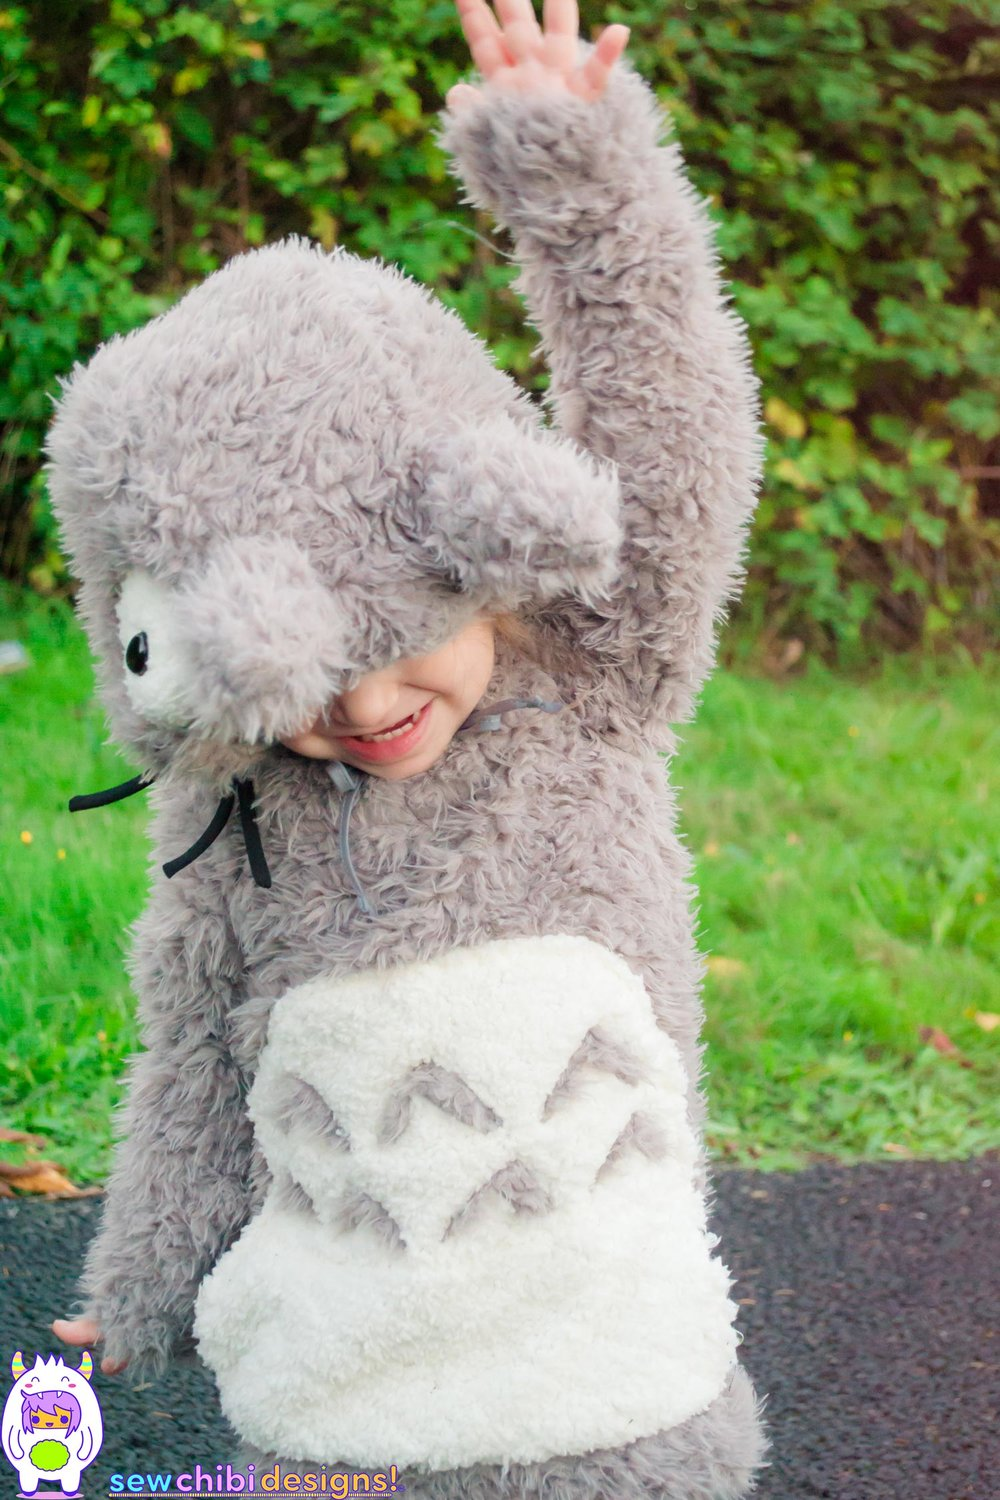 Chibi cosplay of from My Neighbor Totoro sewn by Sew Chibi Designs for Halloween featuring the Bimaa Sweater PDF pattern